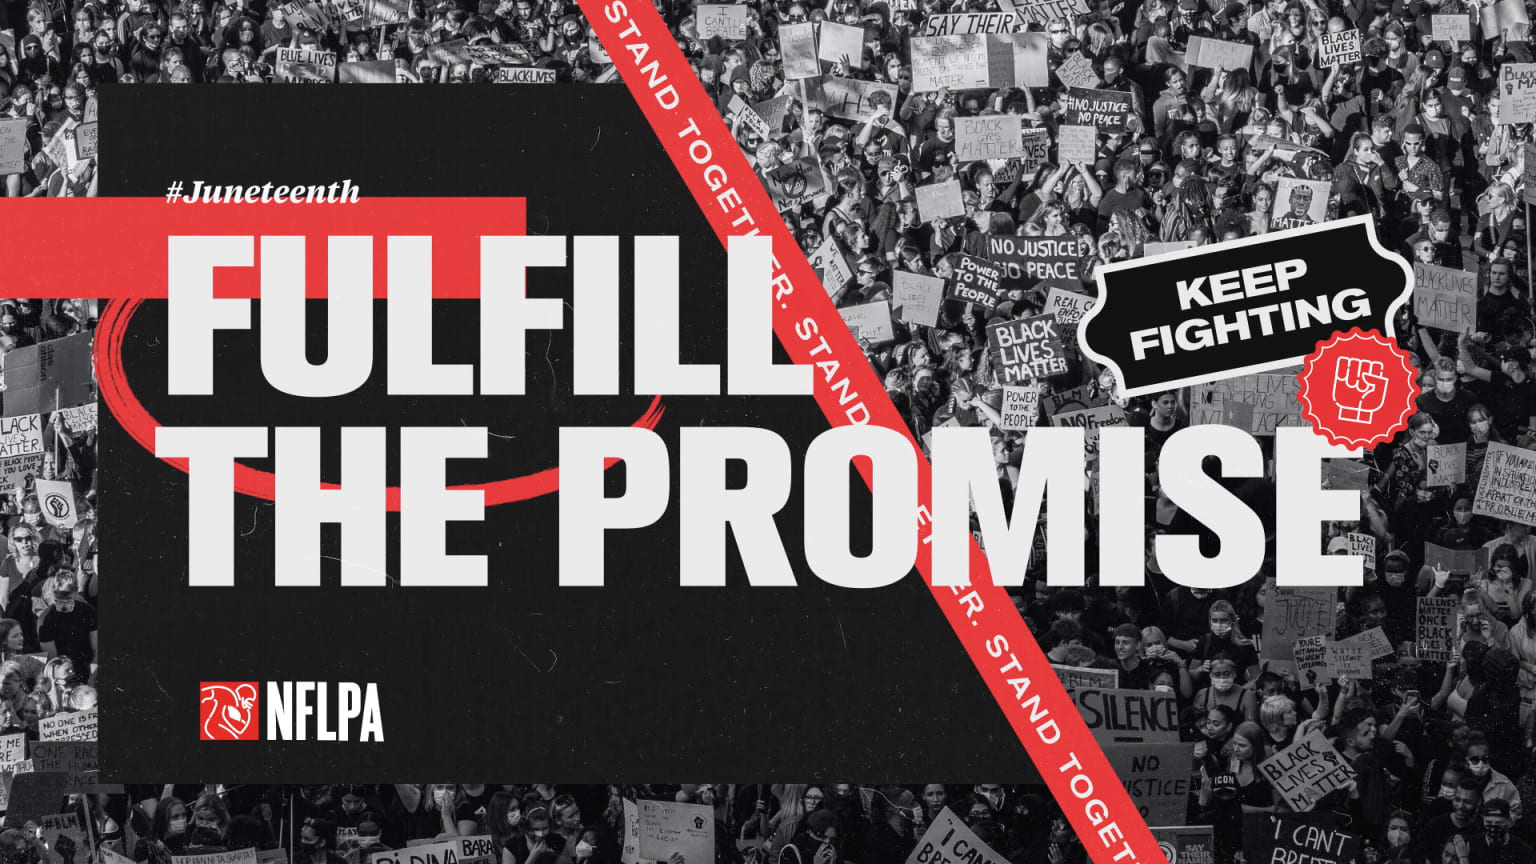 """NFLPA """"Juneteenth: Fulfill The Promise"""""""